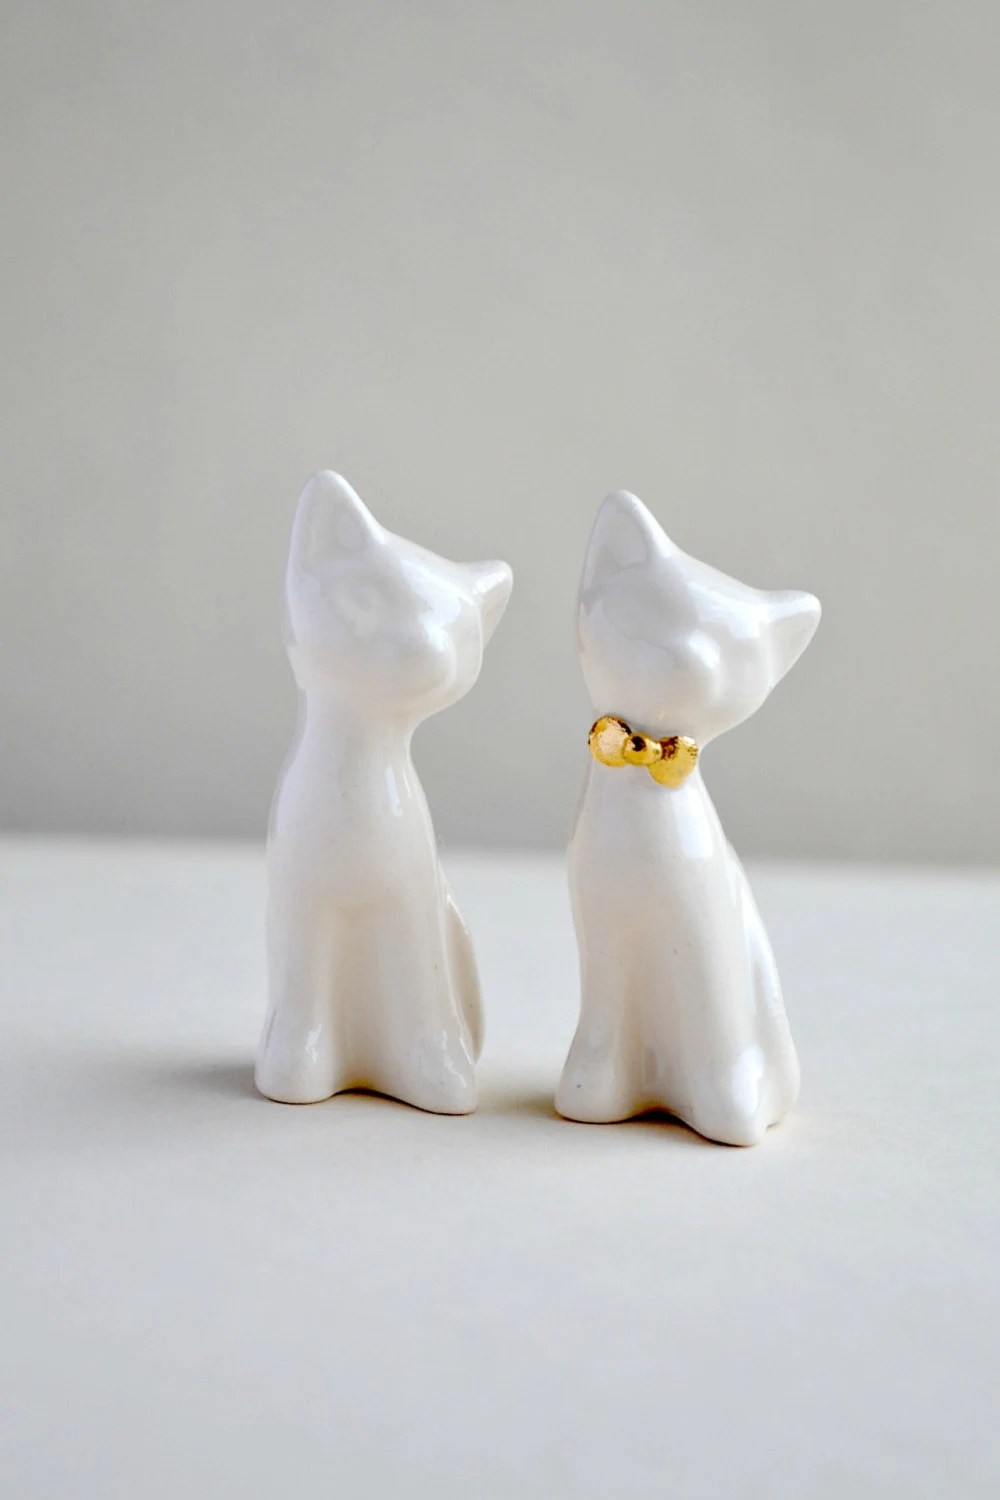 Cat cake topper, wedding cake topper, gold ivory - white wedding, ceramic cat cake topper wedding, wedding keepsake